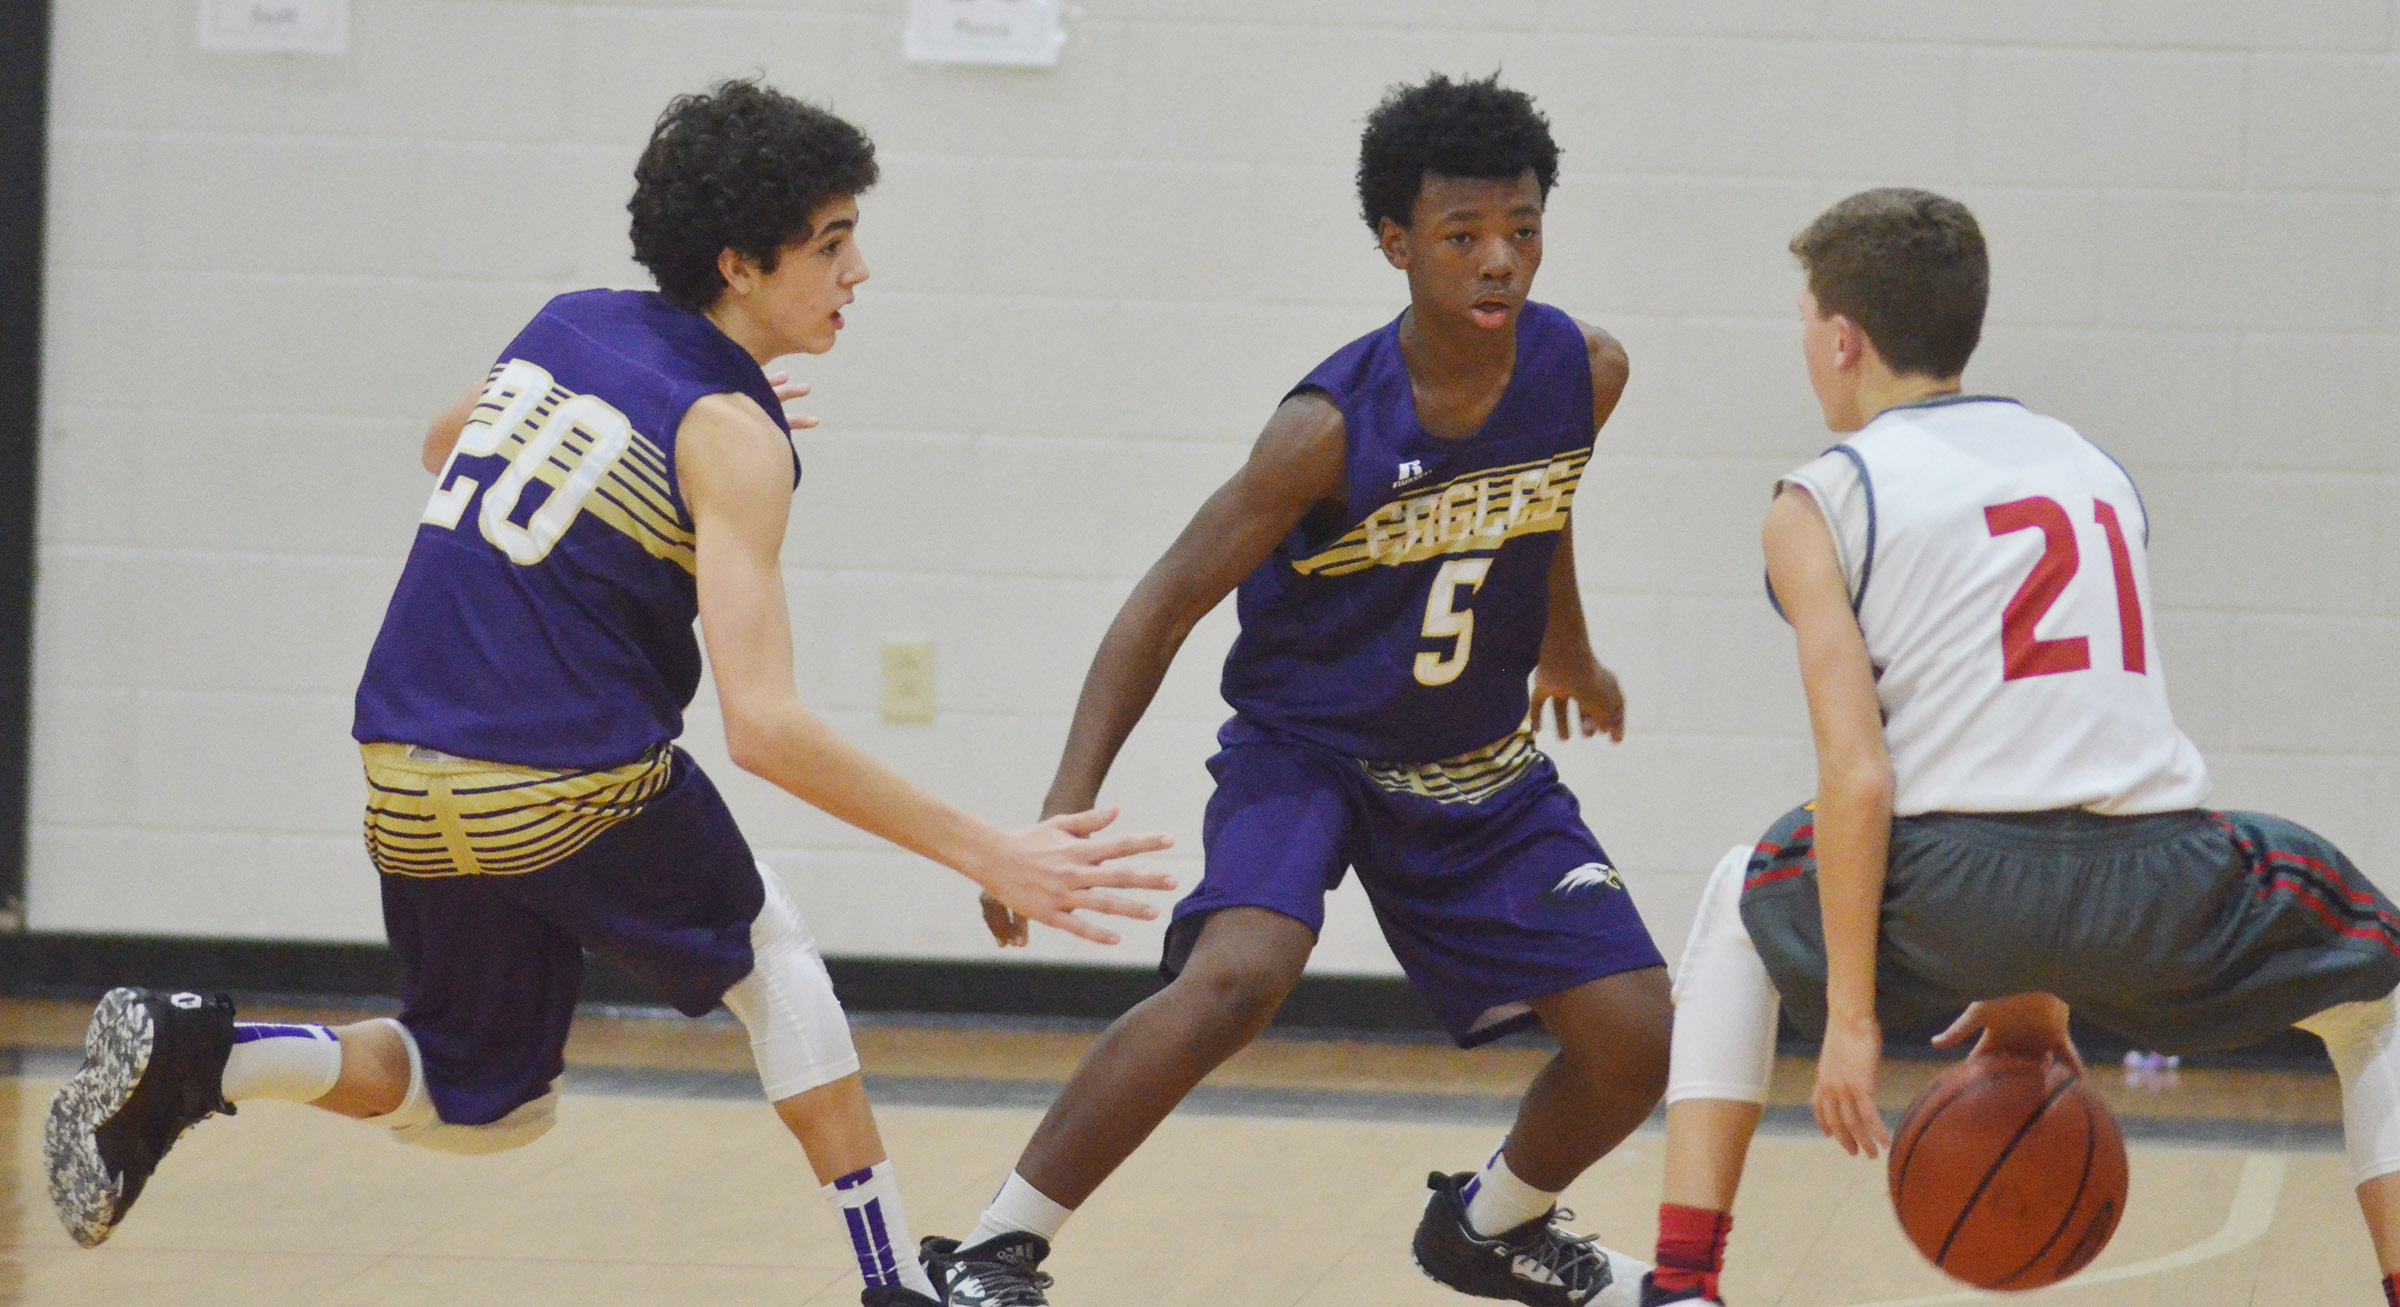 CMS eighth-graders Kameron Smith, at left, and Saevon Buckner play defense.